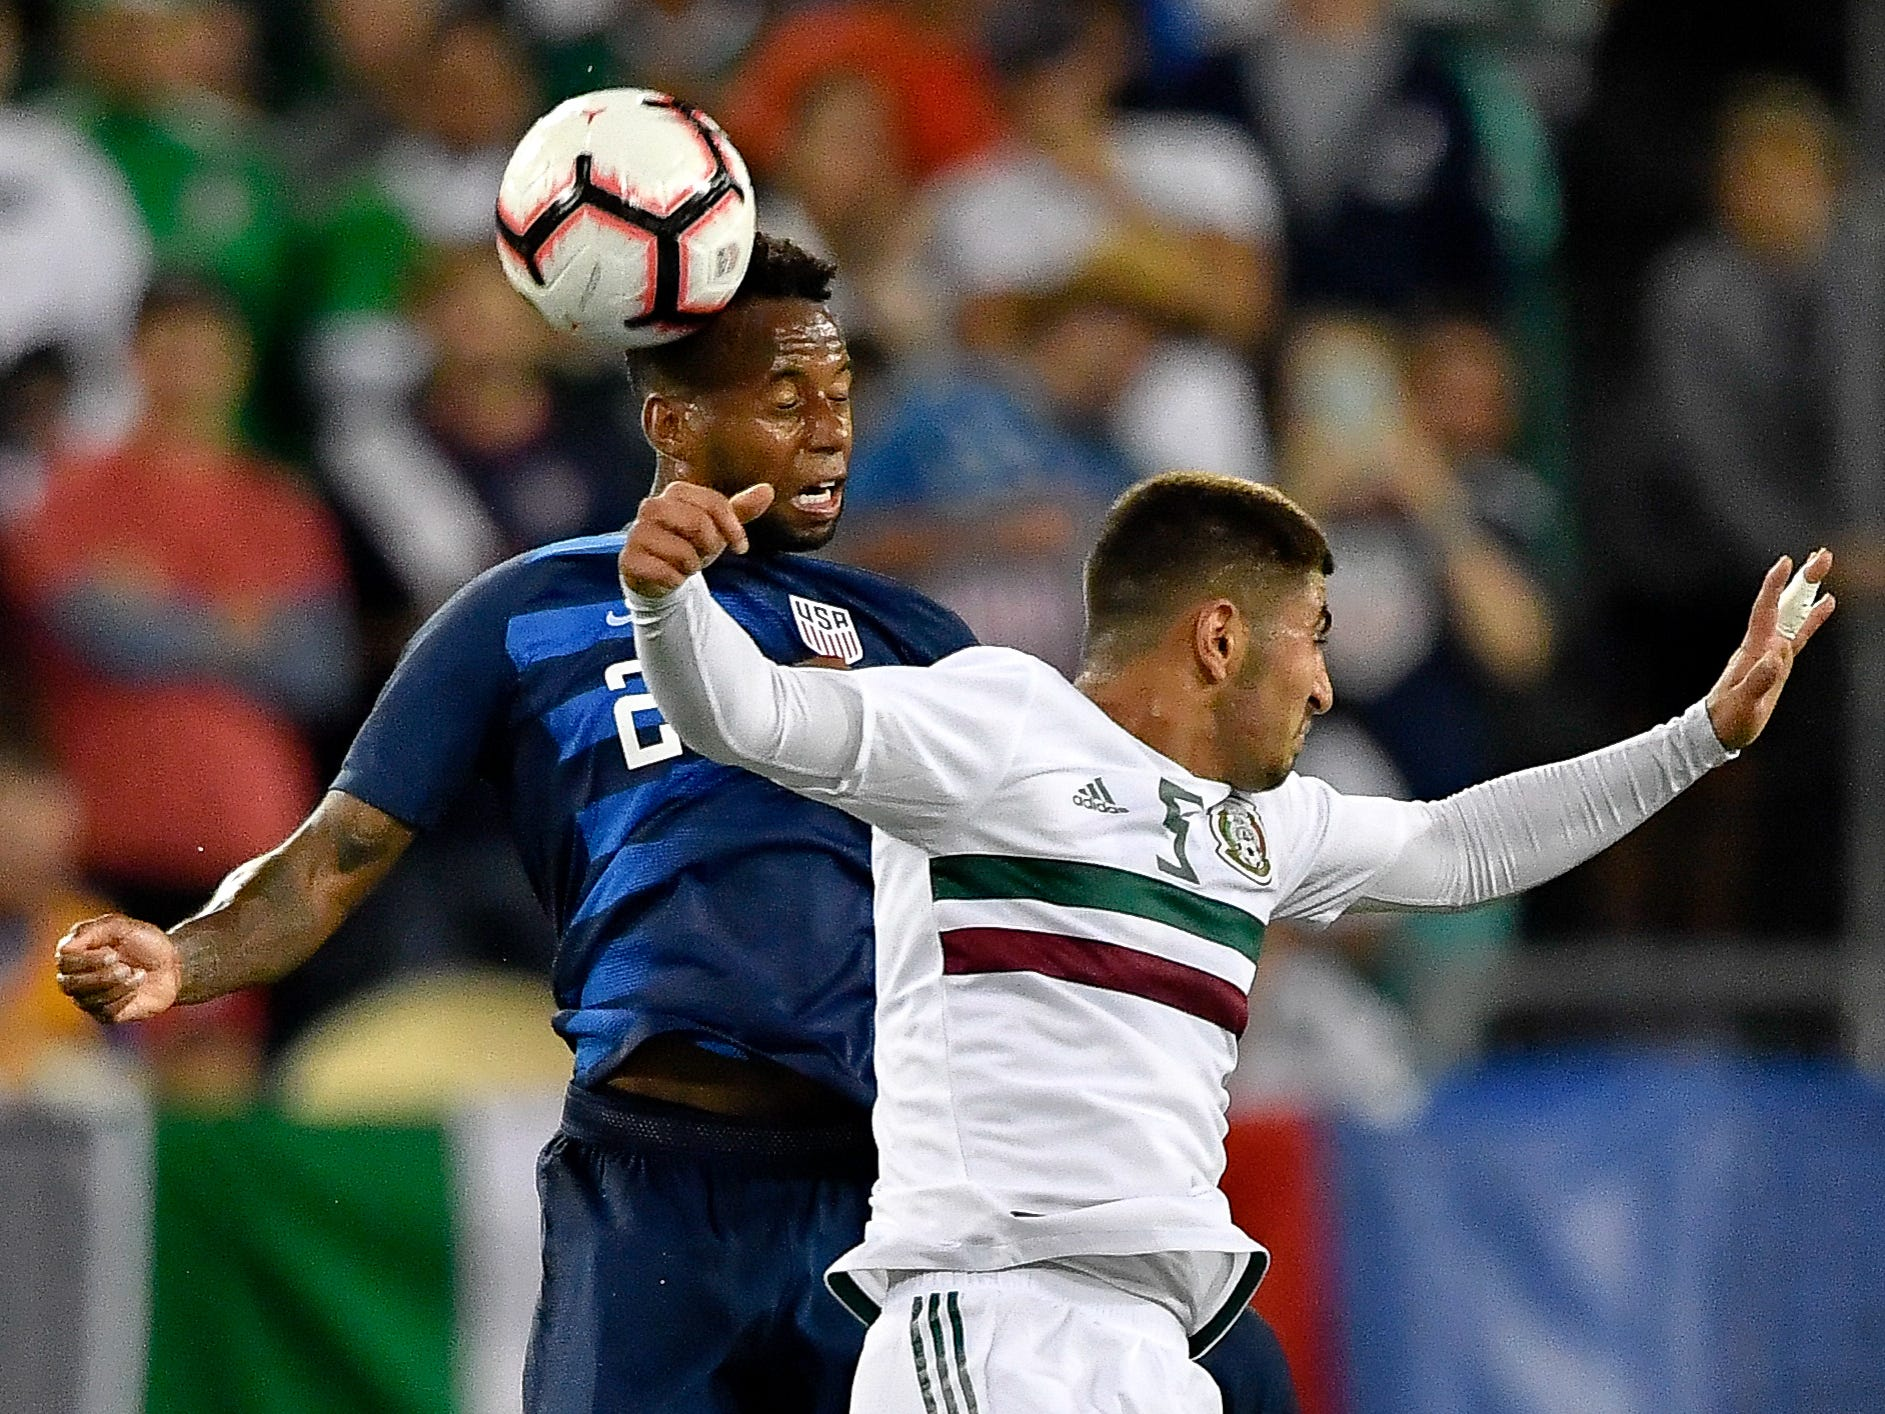 Mexico midfielder Victor Guzman (5) and USA midfielder Kellyn Acosta (23) leap for a header during the first half at Nissan Stadium in Nashville, Tenn., Tuesday, Sept. 11, 2018.